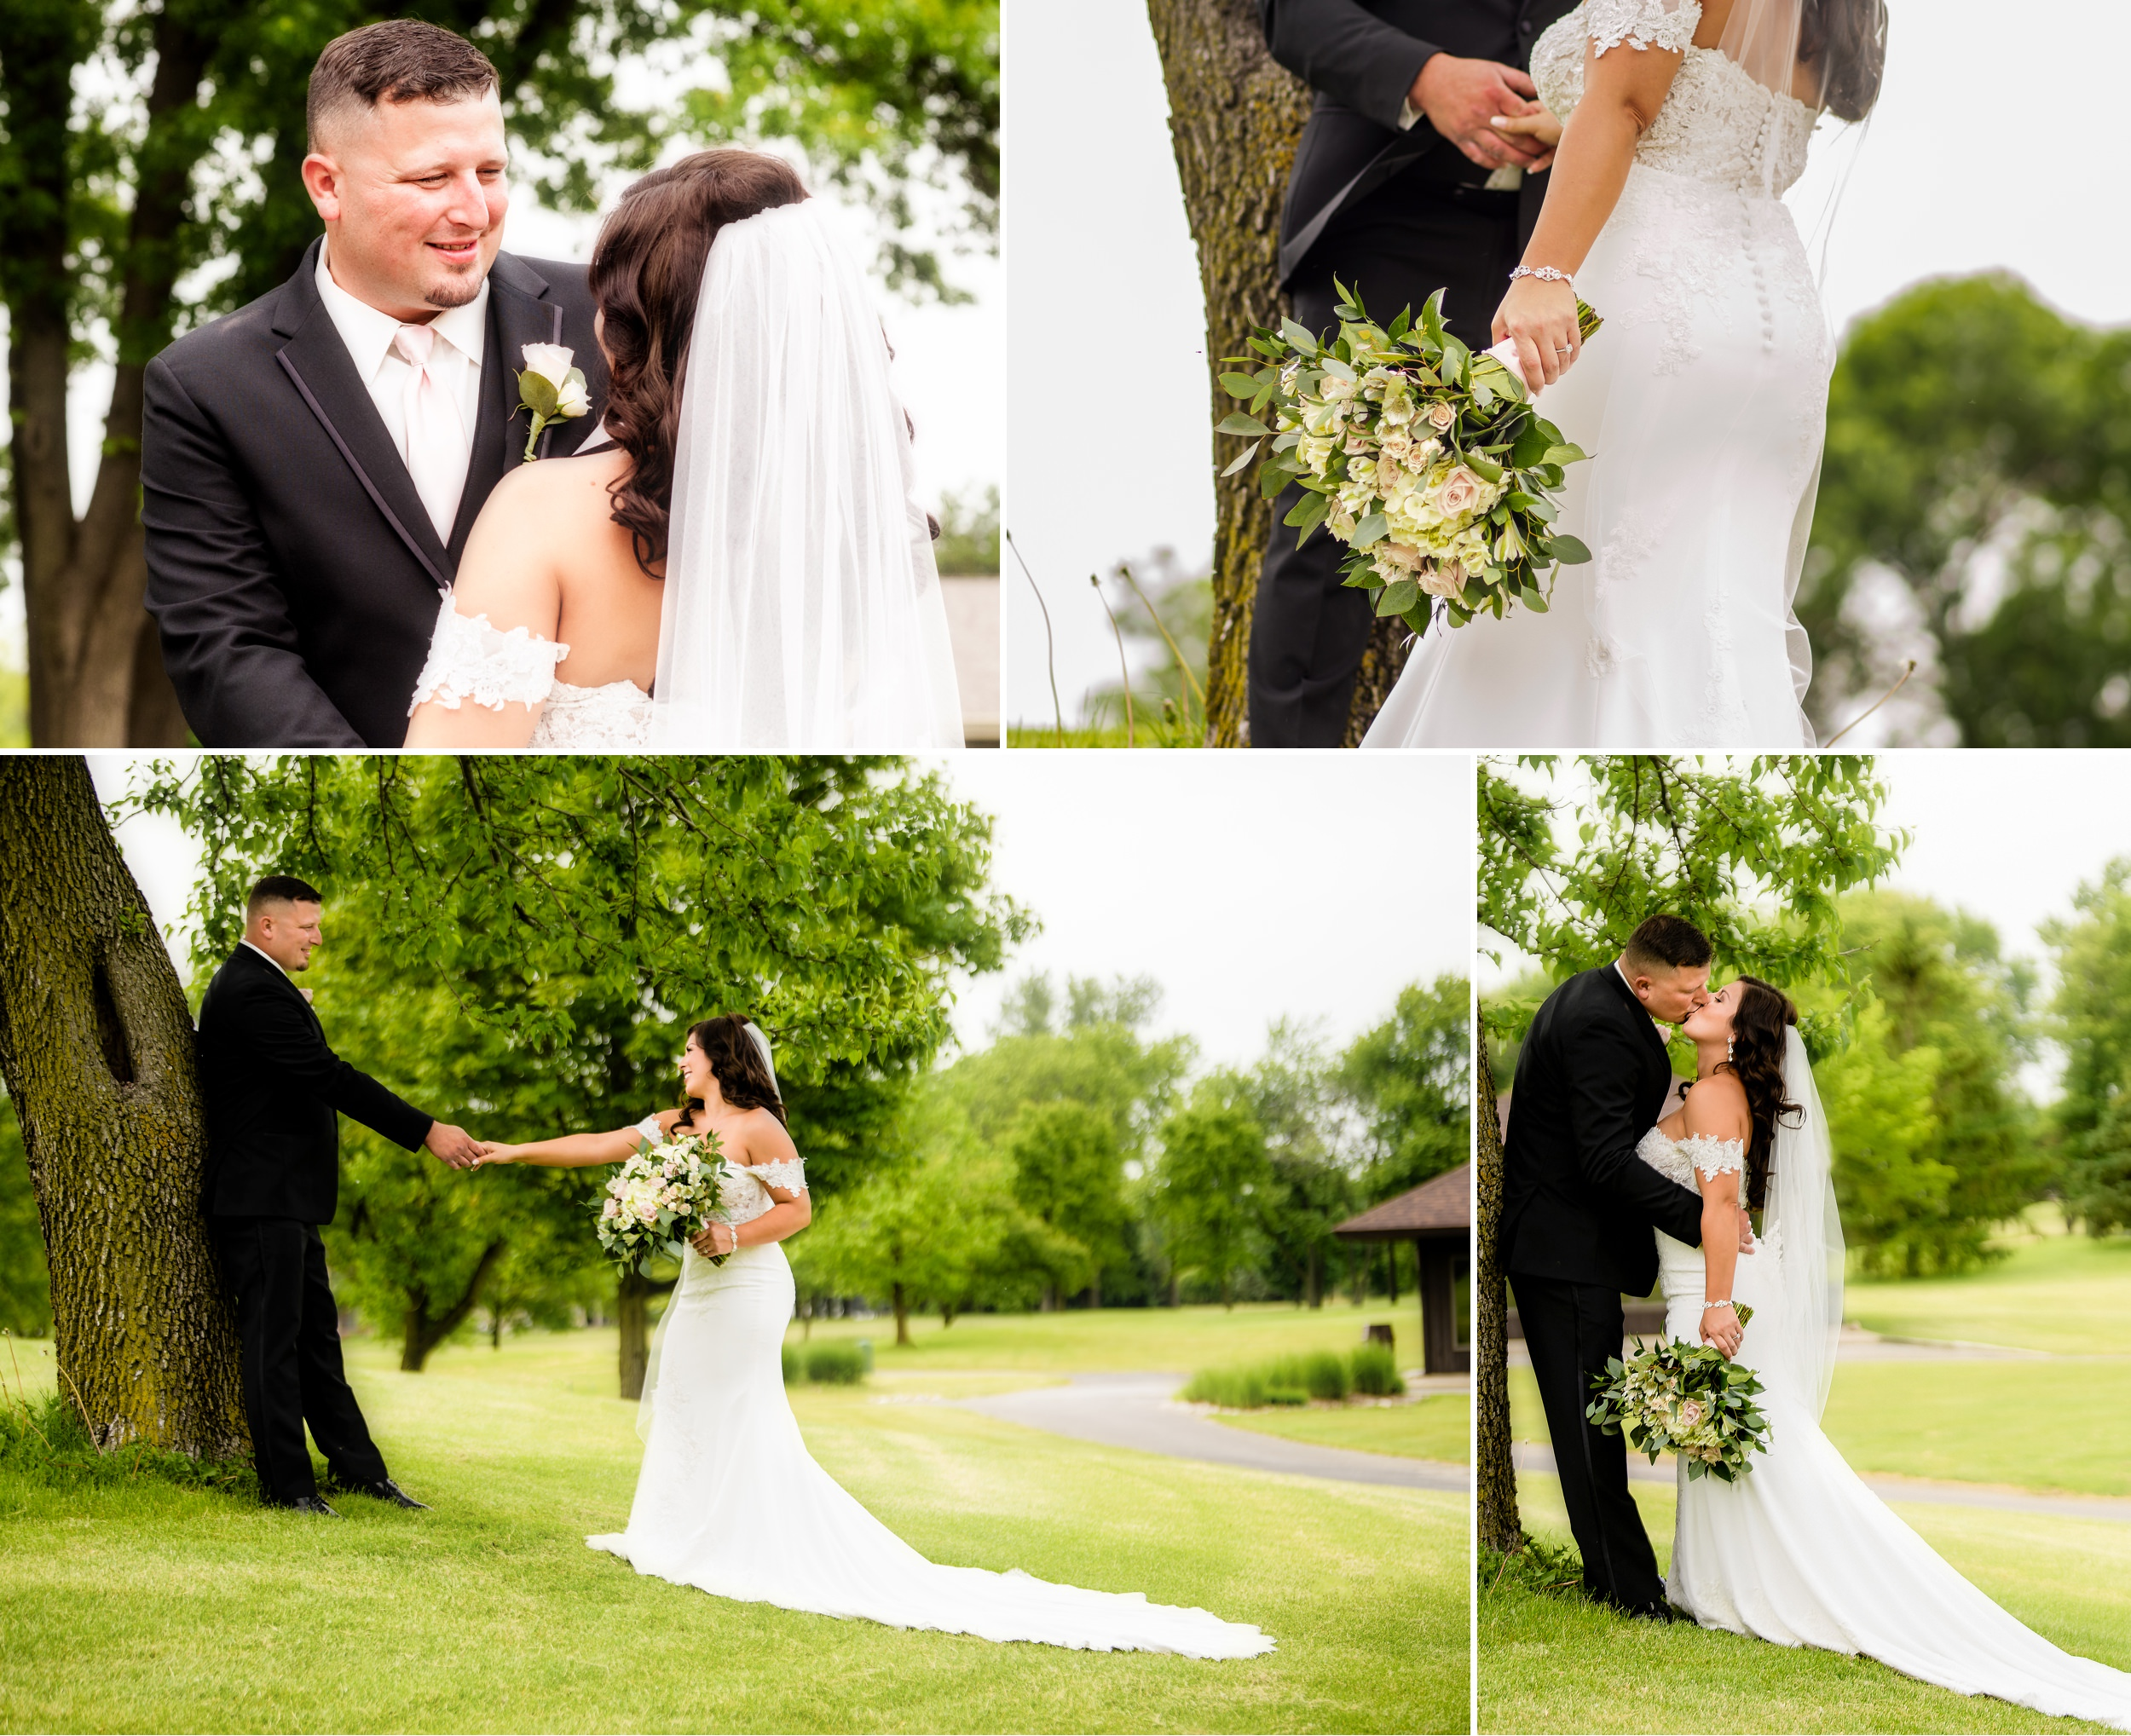 Romantic wedding photos at Briar Ridge.